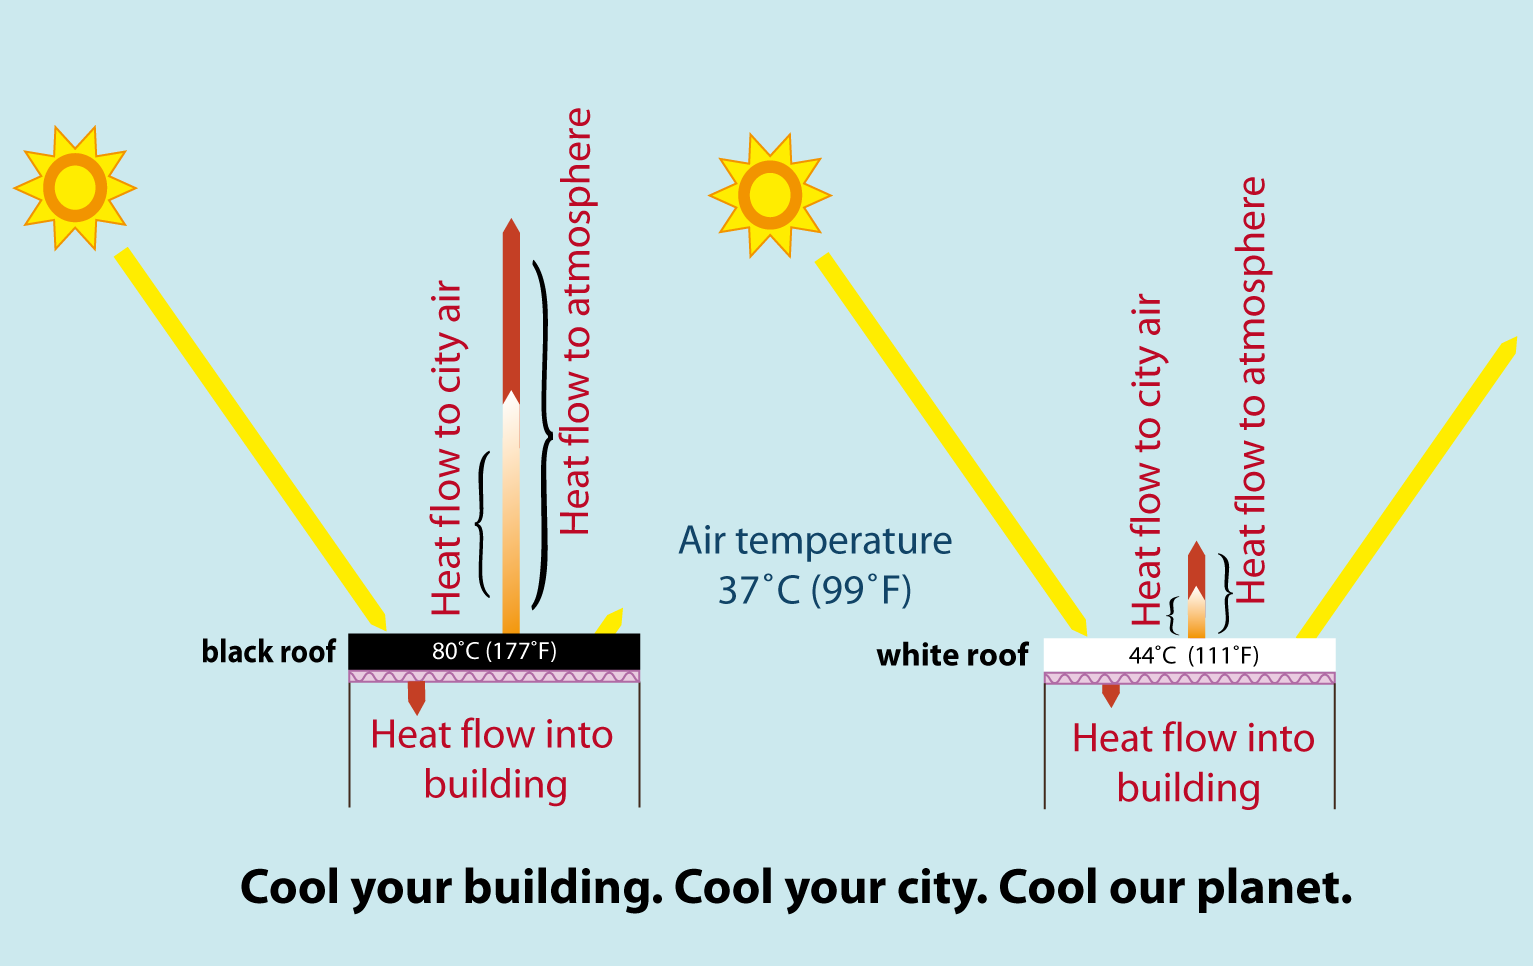 Global Model Confirms Cool Roofs Can Offset Carbon Dioxide Emissions And Mitigate Global Warming